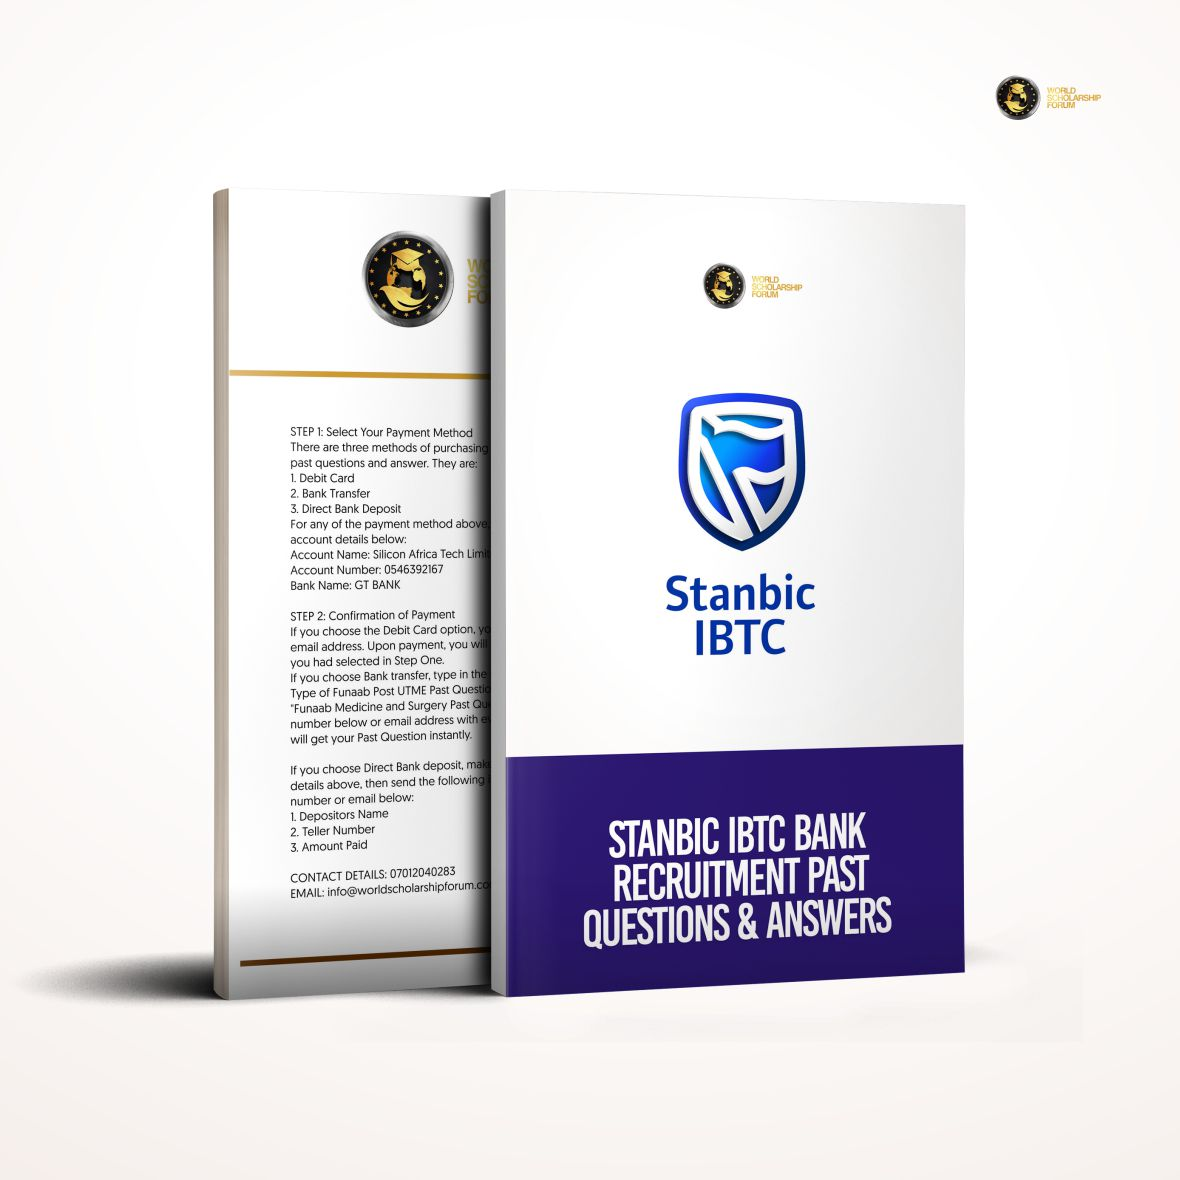 stanbic-ibtc-bank-recruitment-test-past-questions-answers